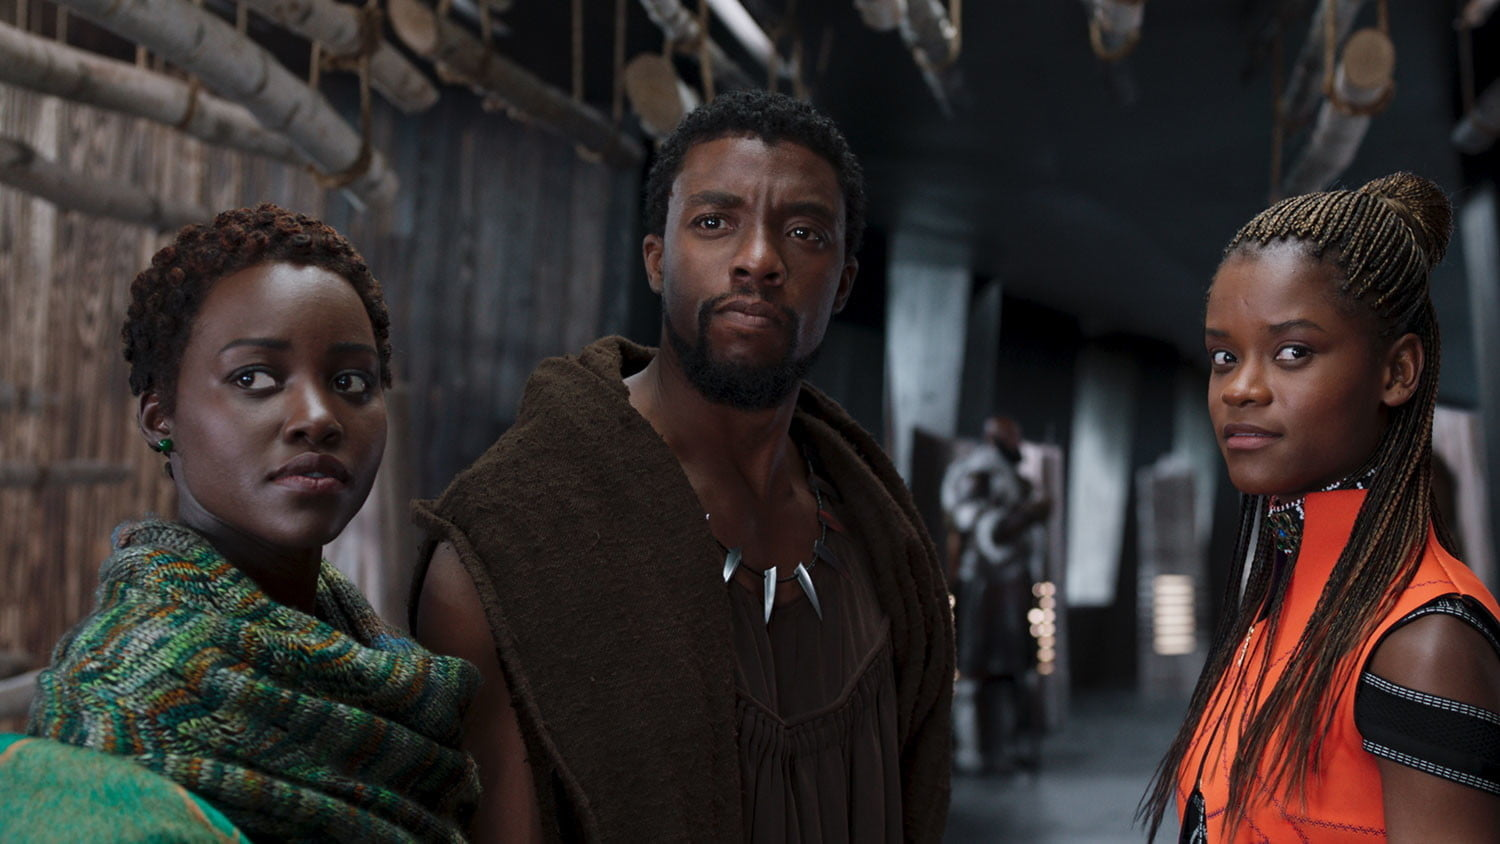 R I P Chadwick Boseman Black Panther 2 Everything We Know About The Sequel So Far Digital Trends